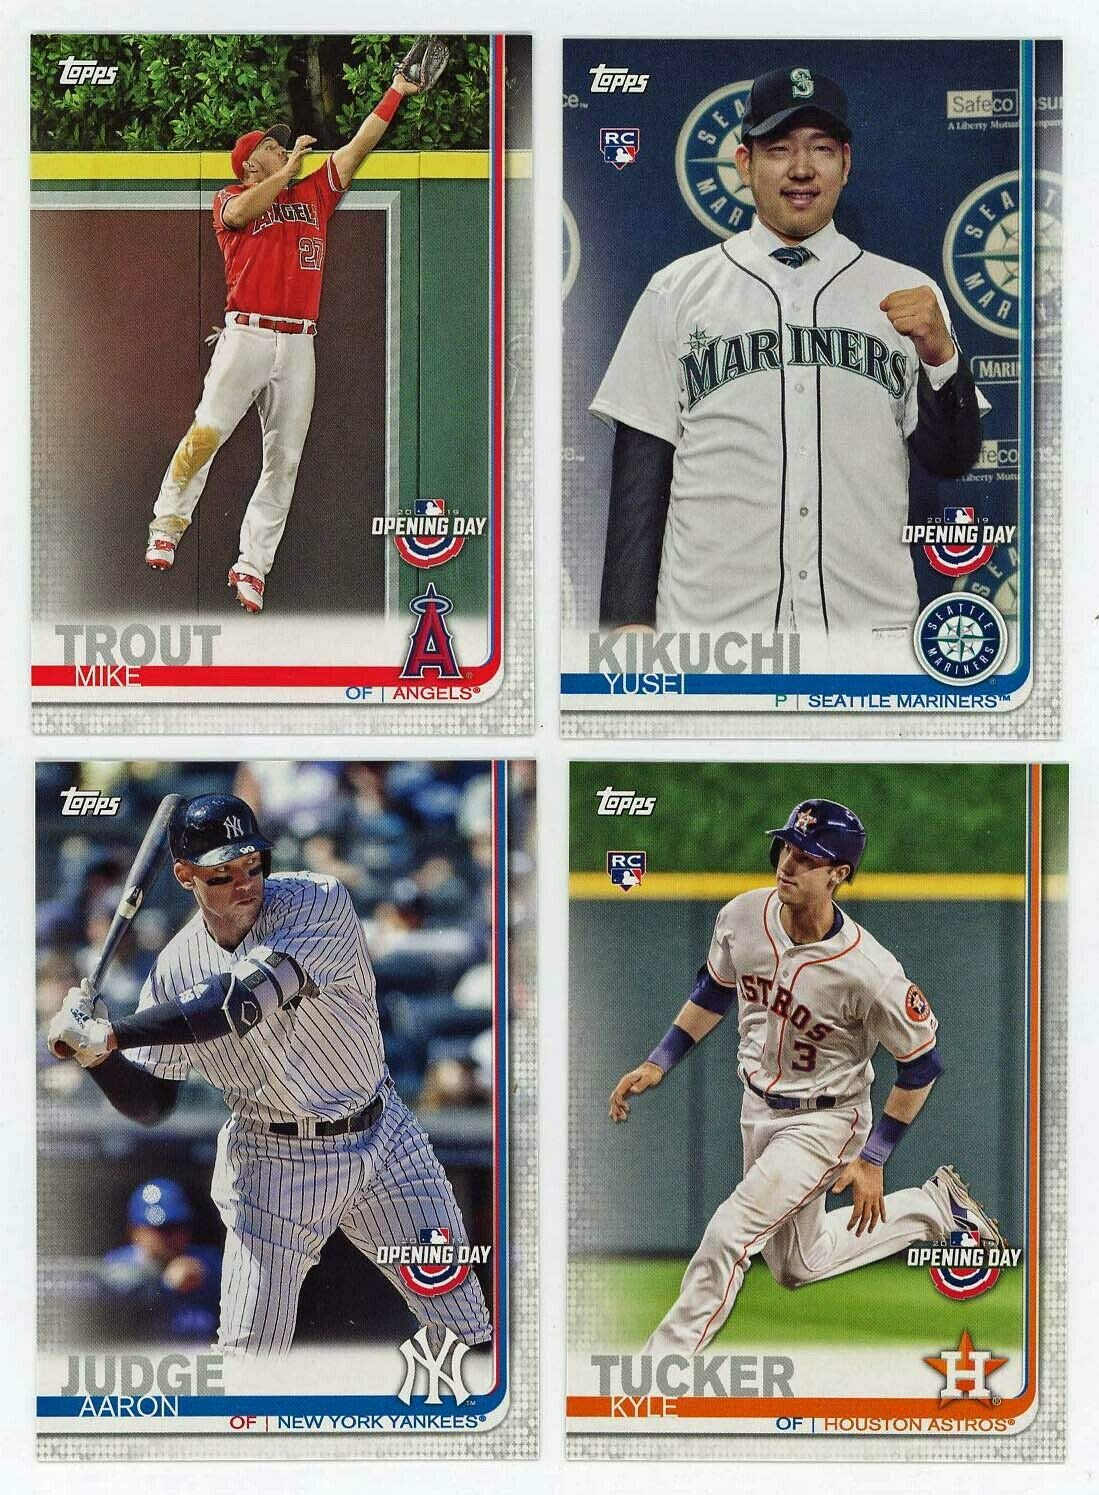 2019 Topps Opening Day Baseball Series Complete